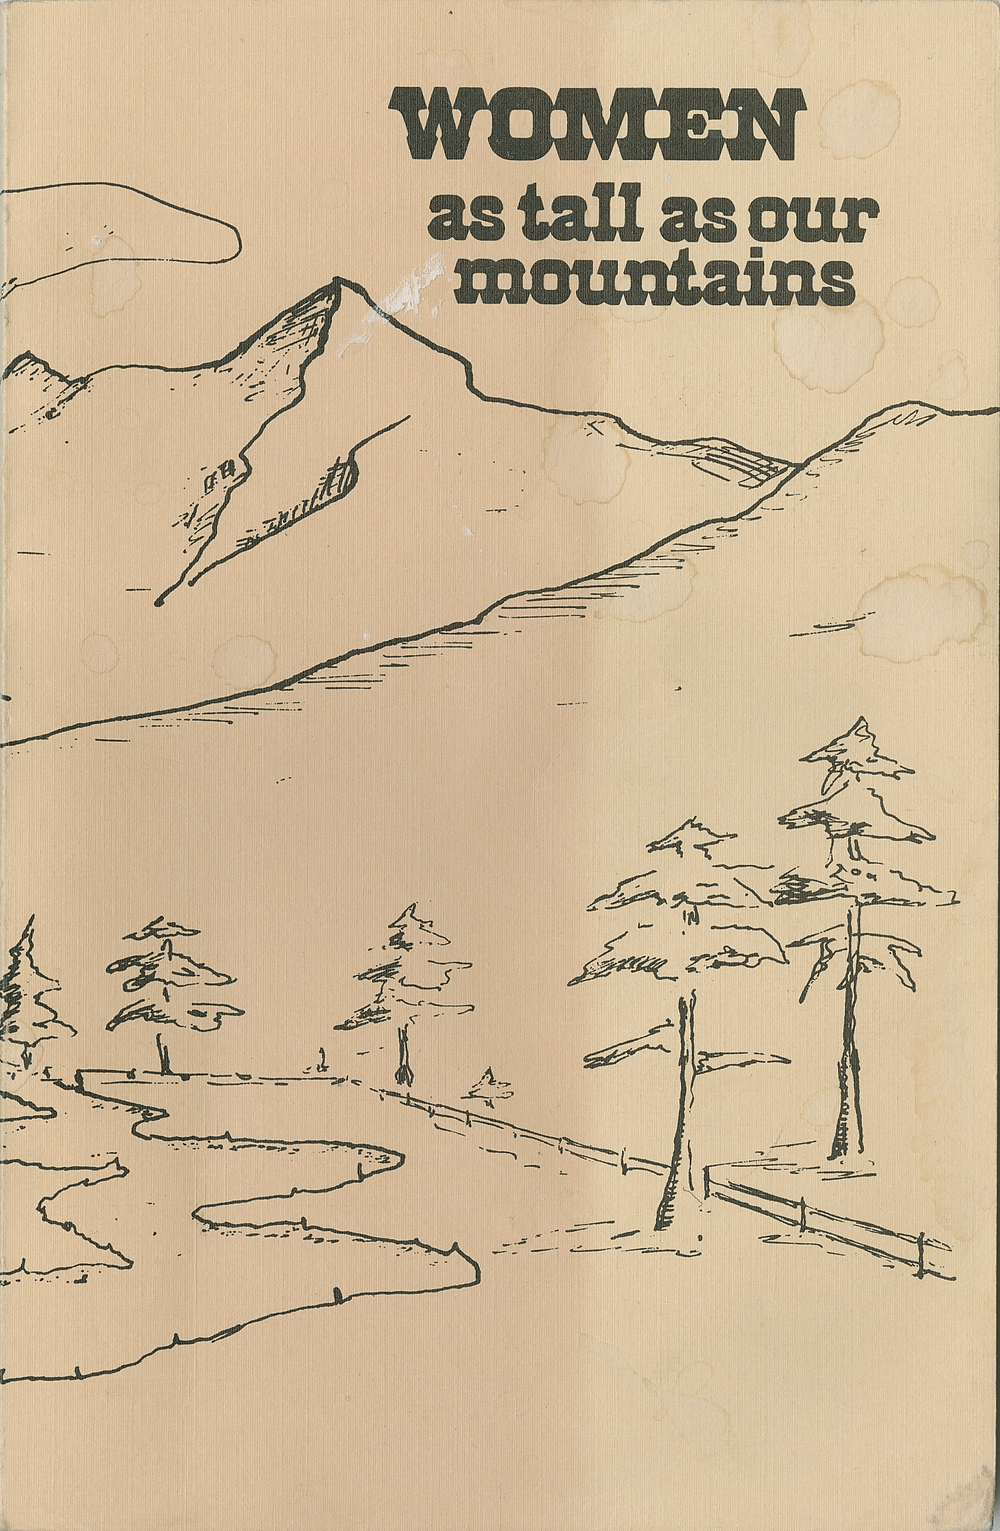 scan of book cover